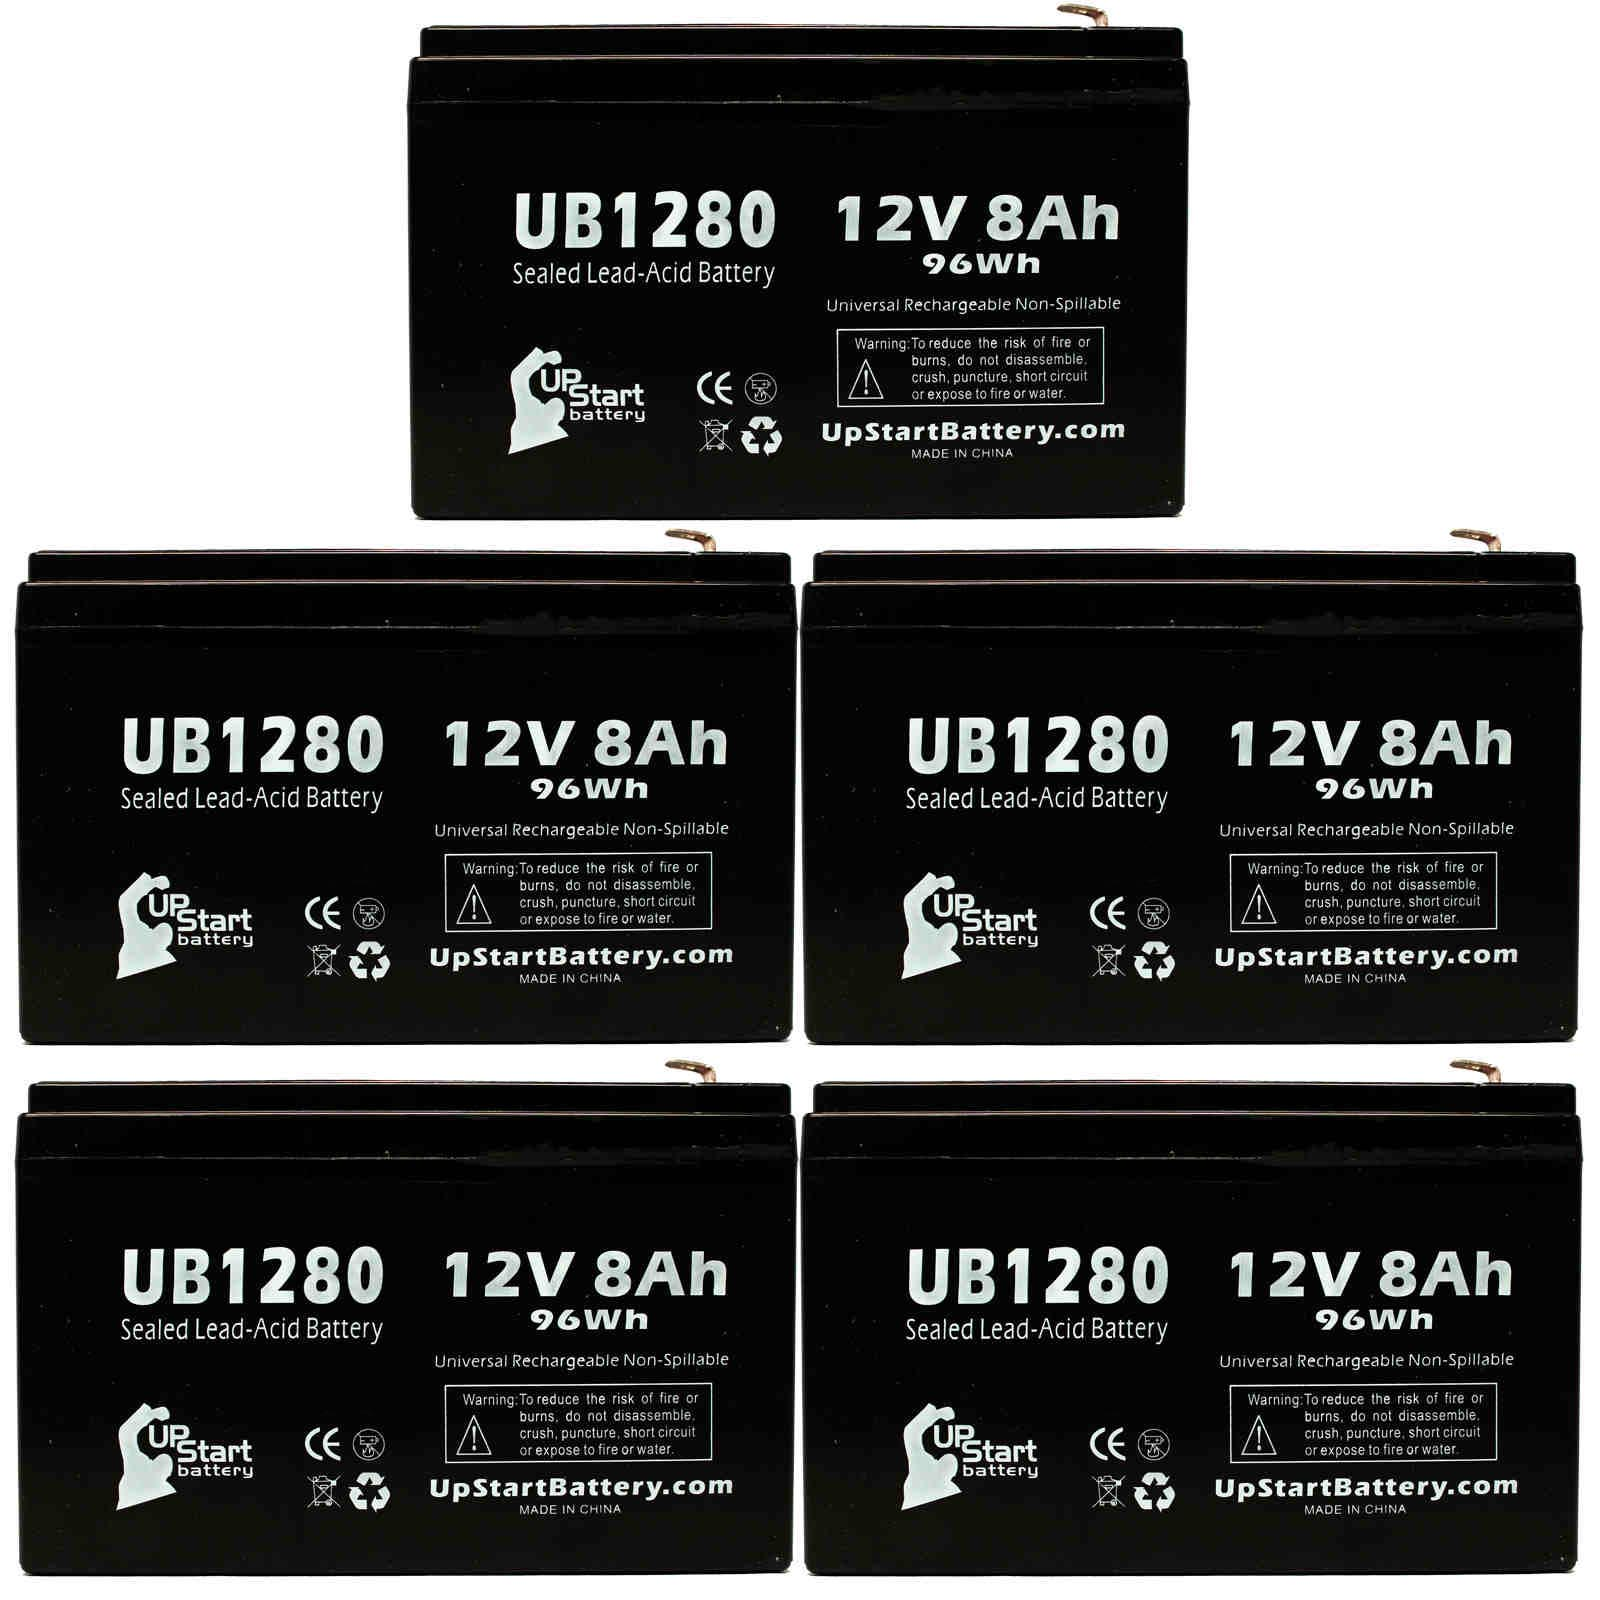 UpStart Battery 5x Pack - Invivo Research Inc OMEGA BLOOD PRESSURE MONITOR 1100 Battery - Replacement UB1280 Universal SLA Battery (12V, 8Ah) at Sears.com